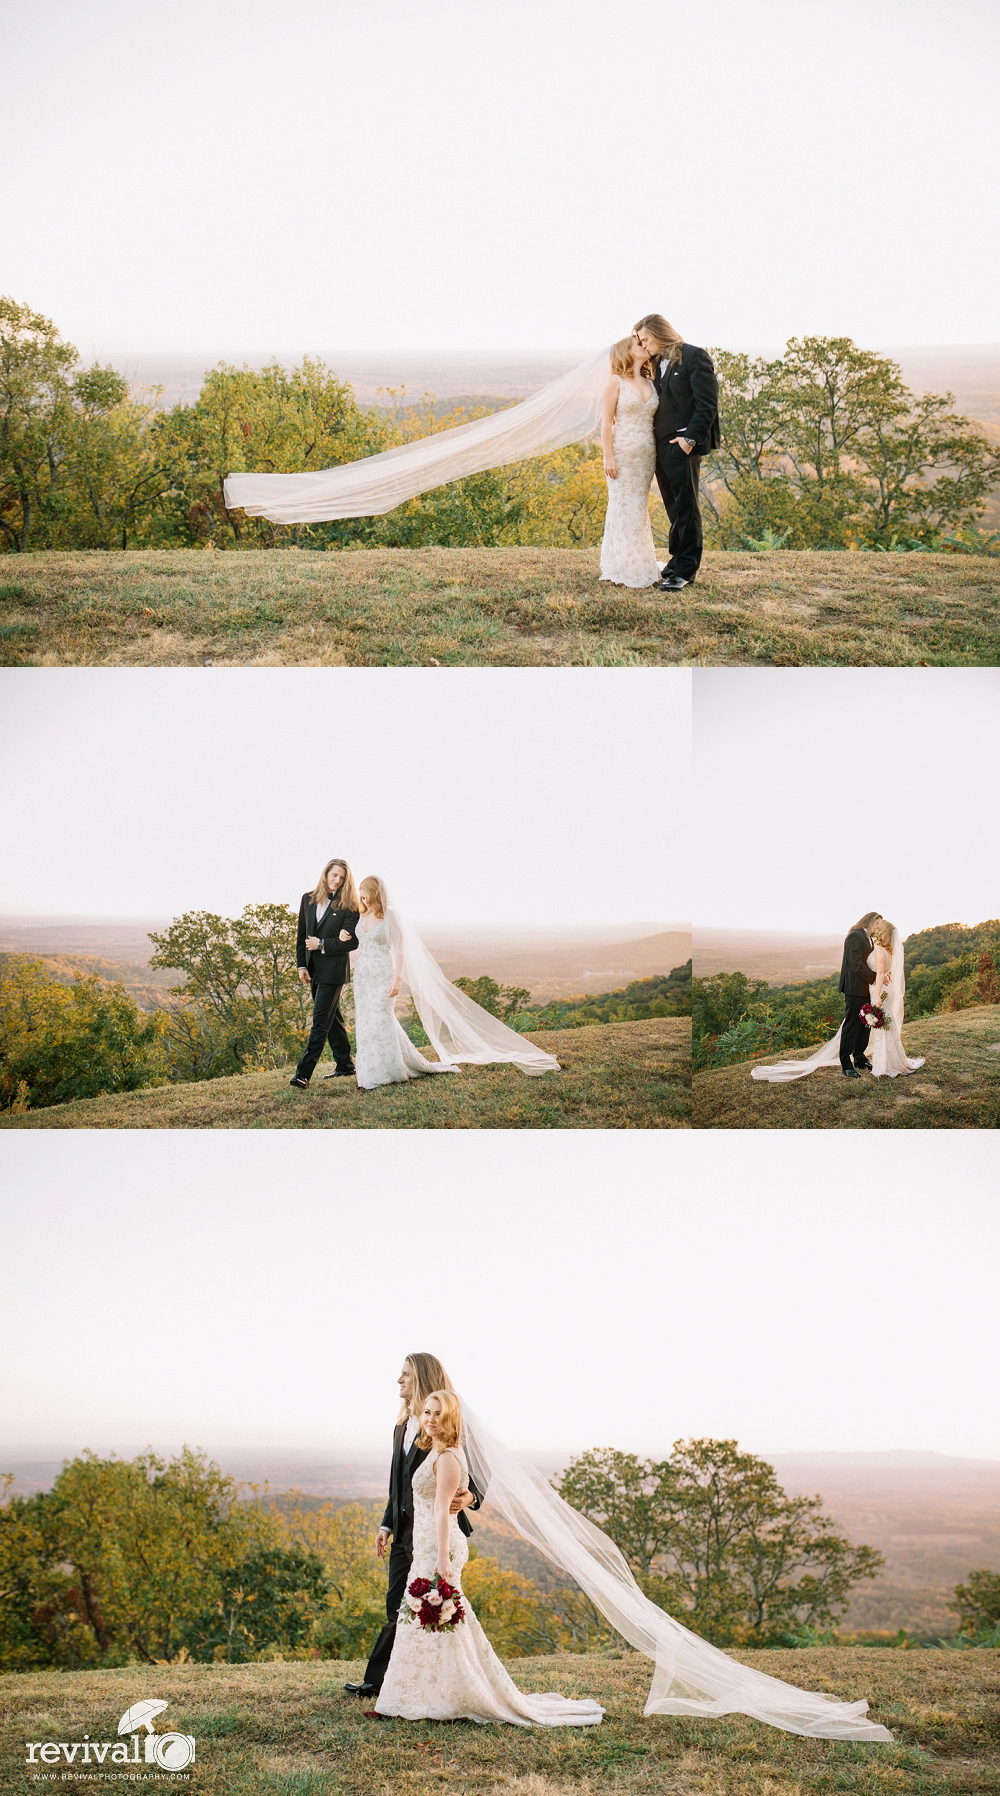 Faith + Howard's Fall Destination Wedding at The Cliffs at Glassy Mountaintop Chapel Photos by Revival Photography www.revivalphotography.com